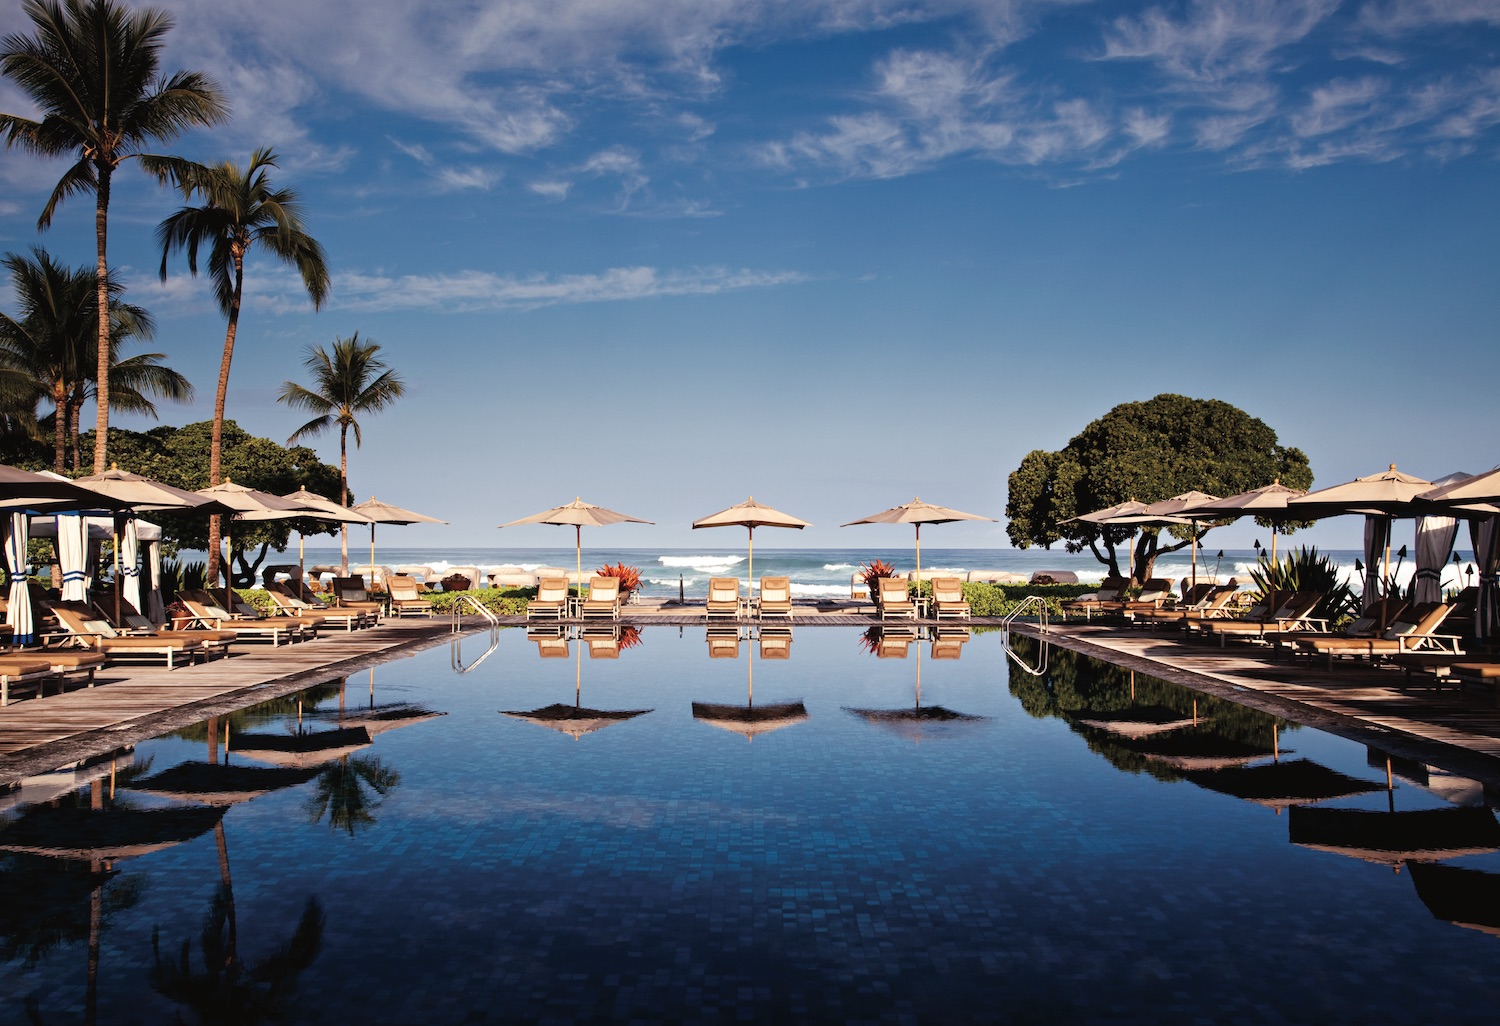 Four Seasons Resort Hualalai - Experience More - Nightly Resort Credit*Read my review